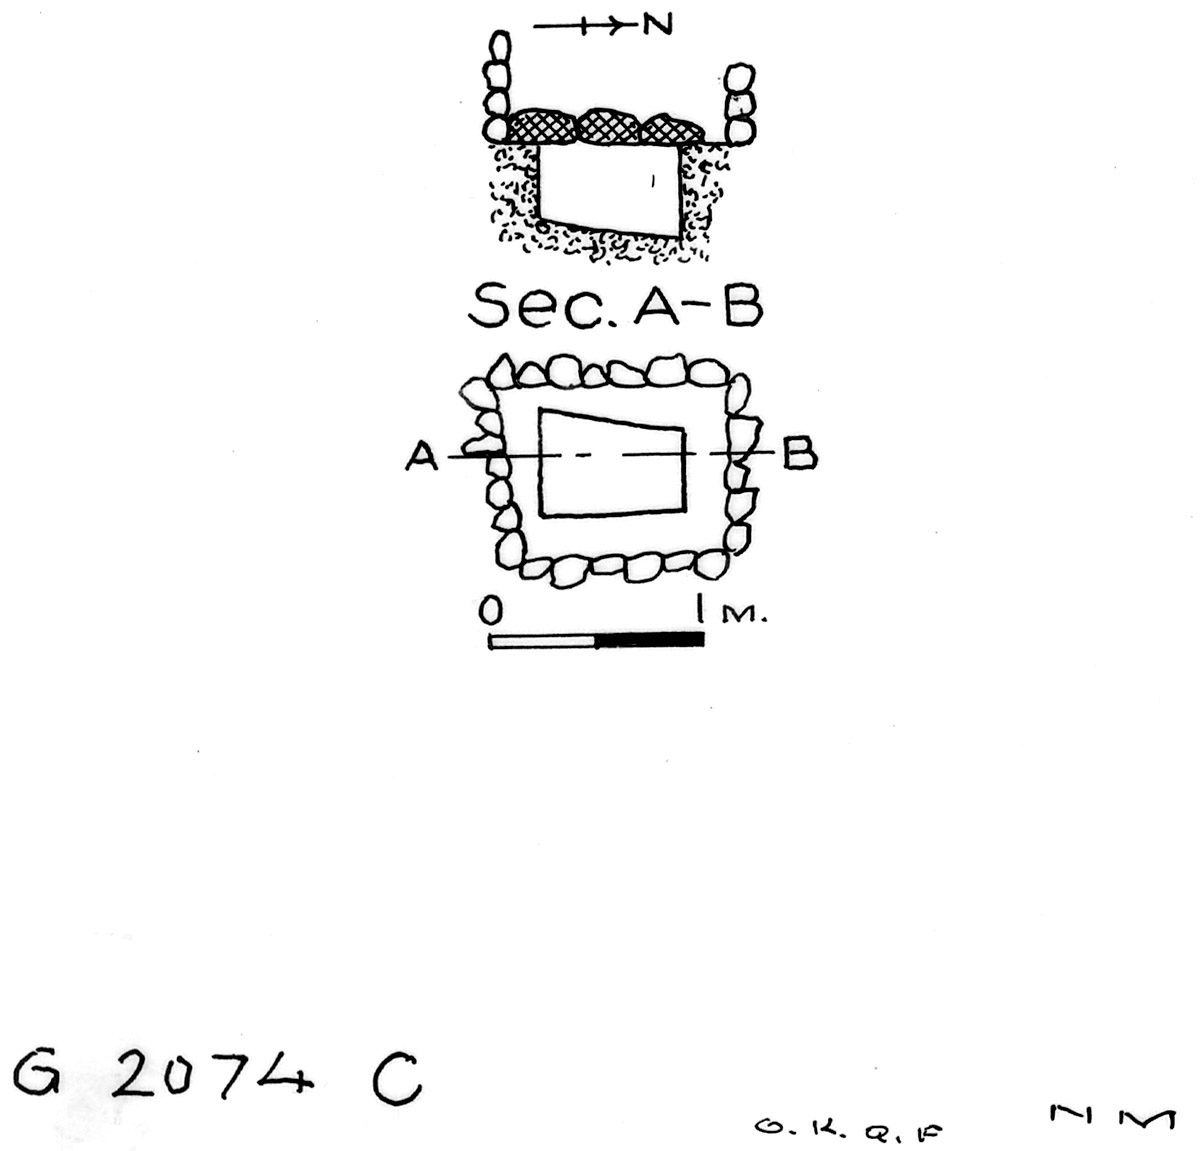 Maps and plans: G 2074, Shaft C